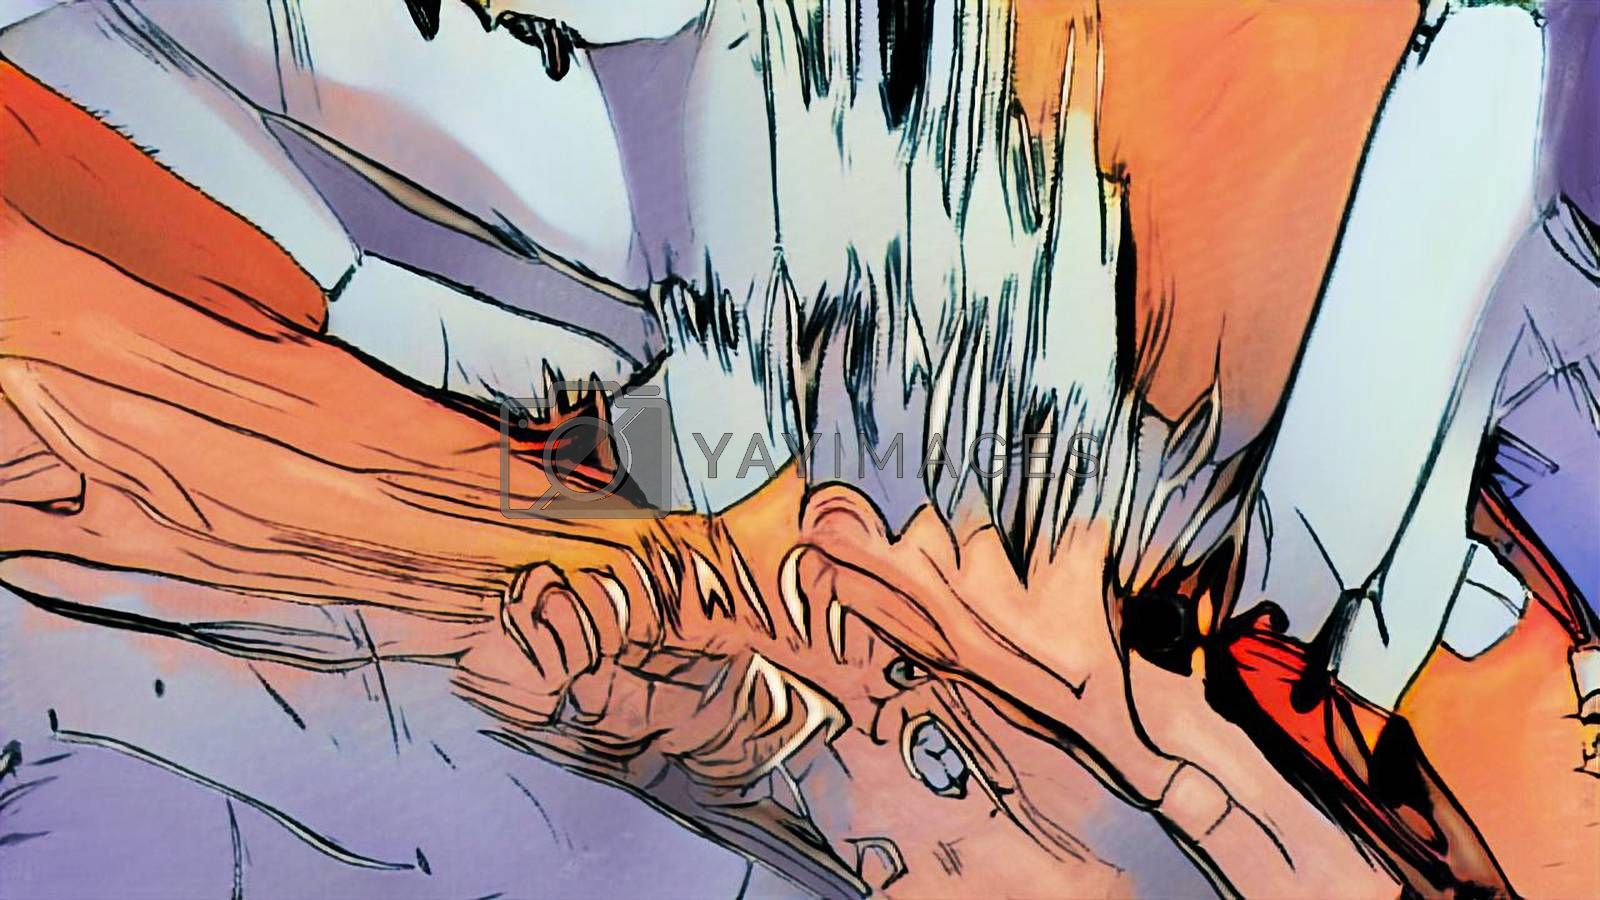 Computer generated abstract comic style backdrop. 3d rendering of the drawn fragment